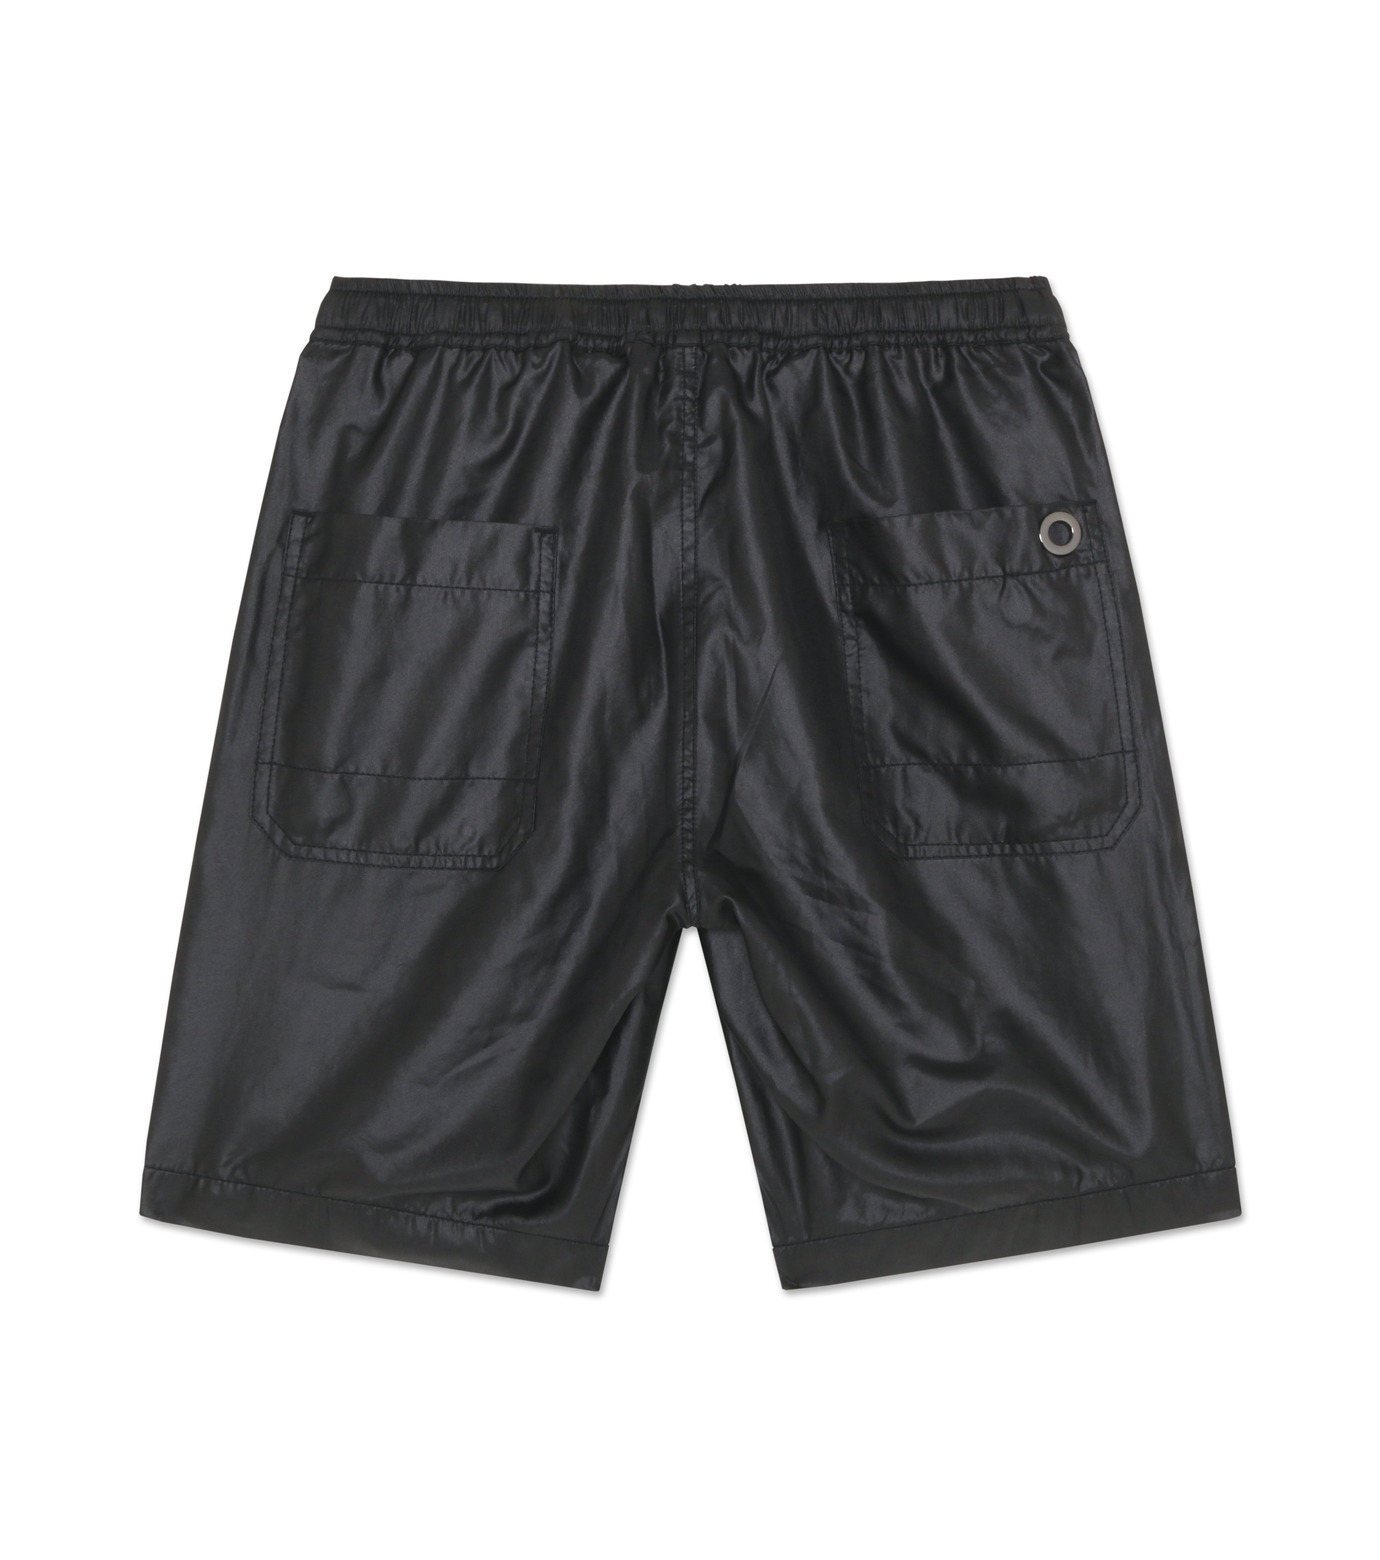 HEY YOU !(ヘイユウ)のWASHED TWILL SHORTS-BLACK(SWIMWEAR/SWIMWEAR)-18S98011-13 拡大詳細画像3